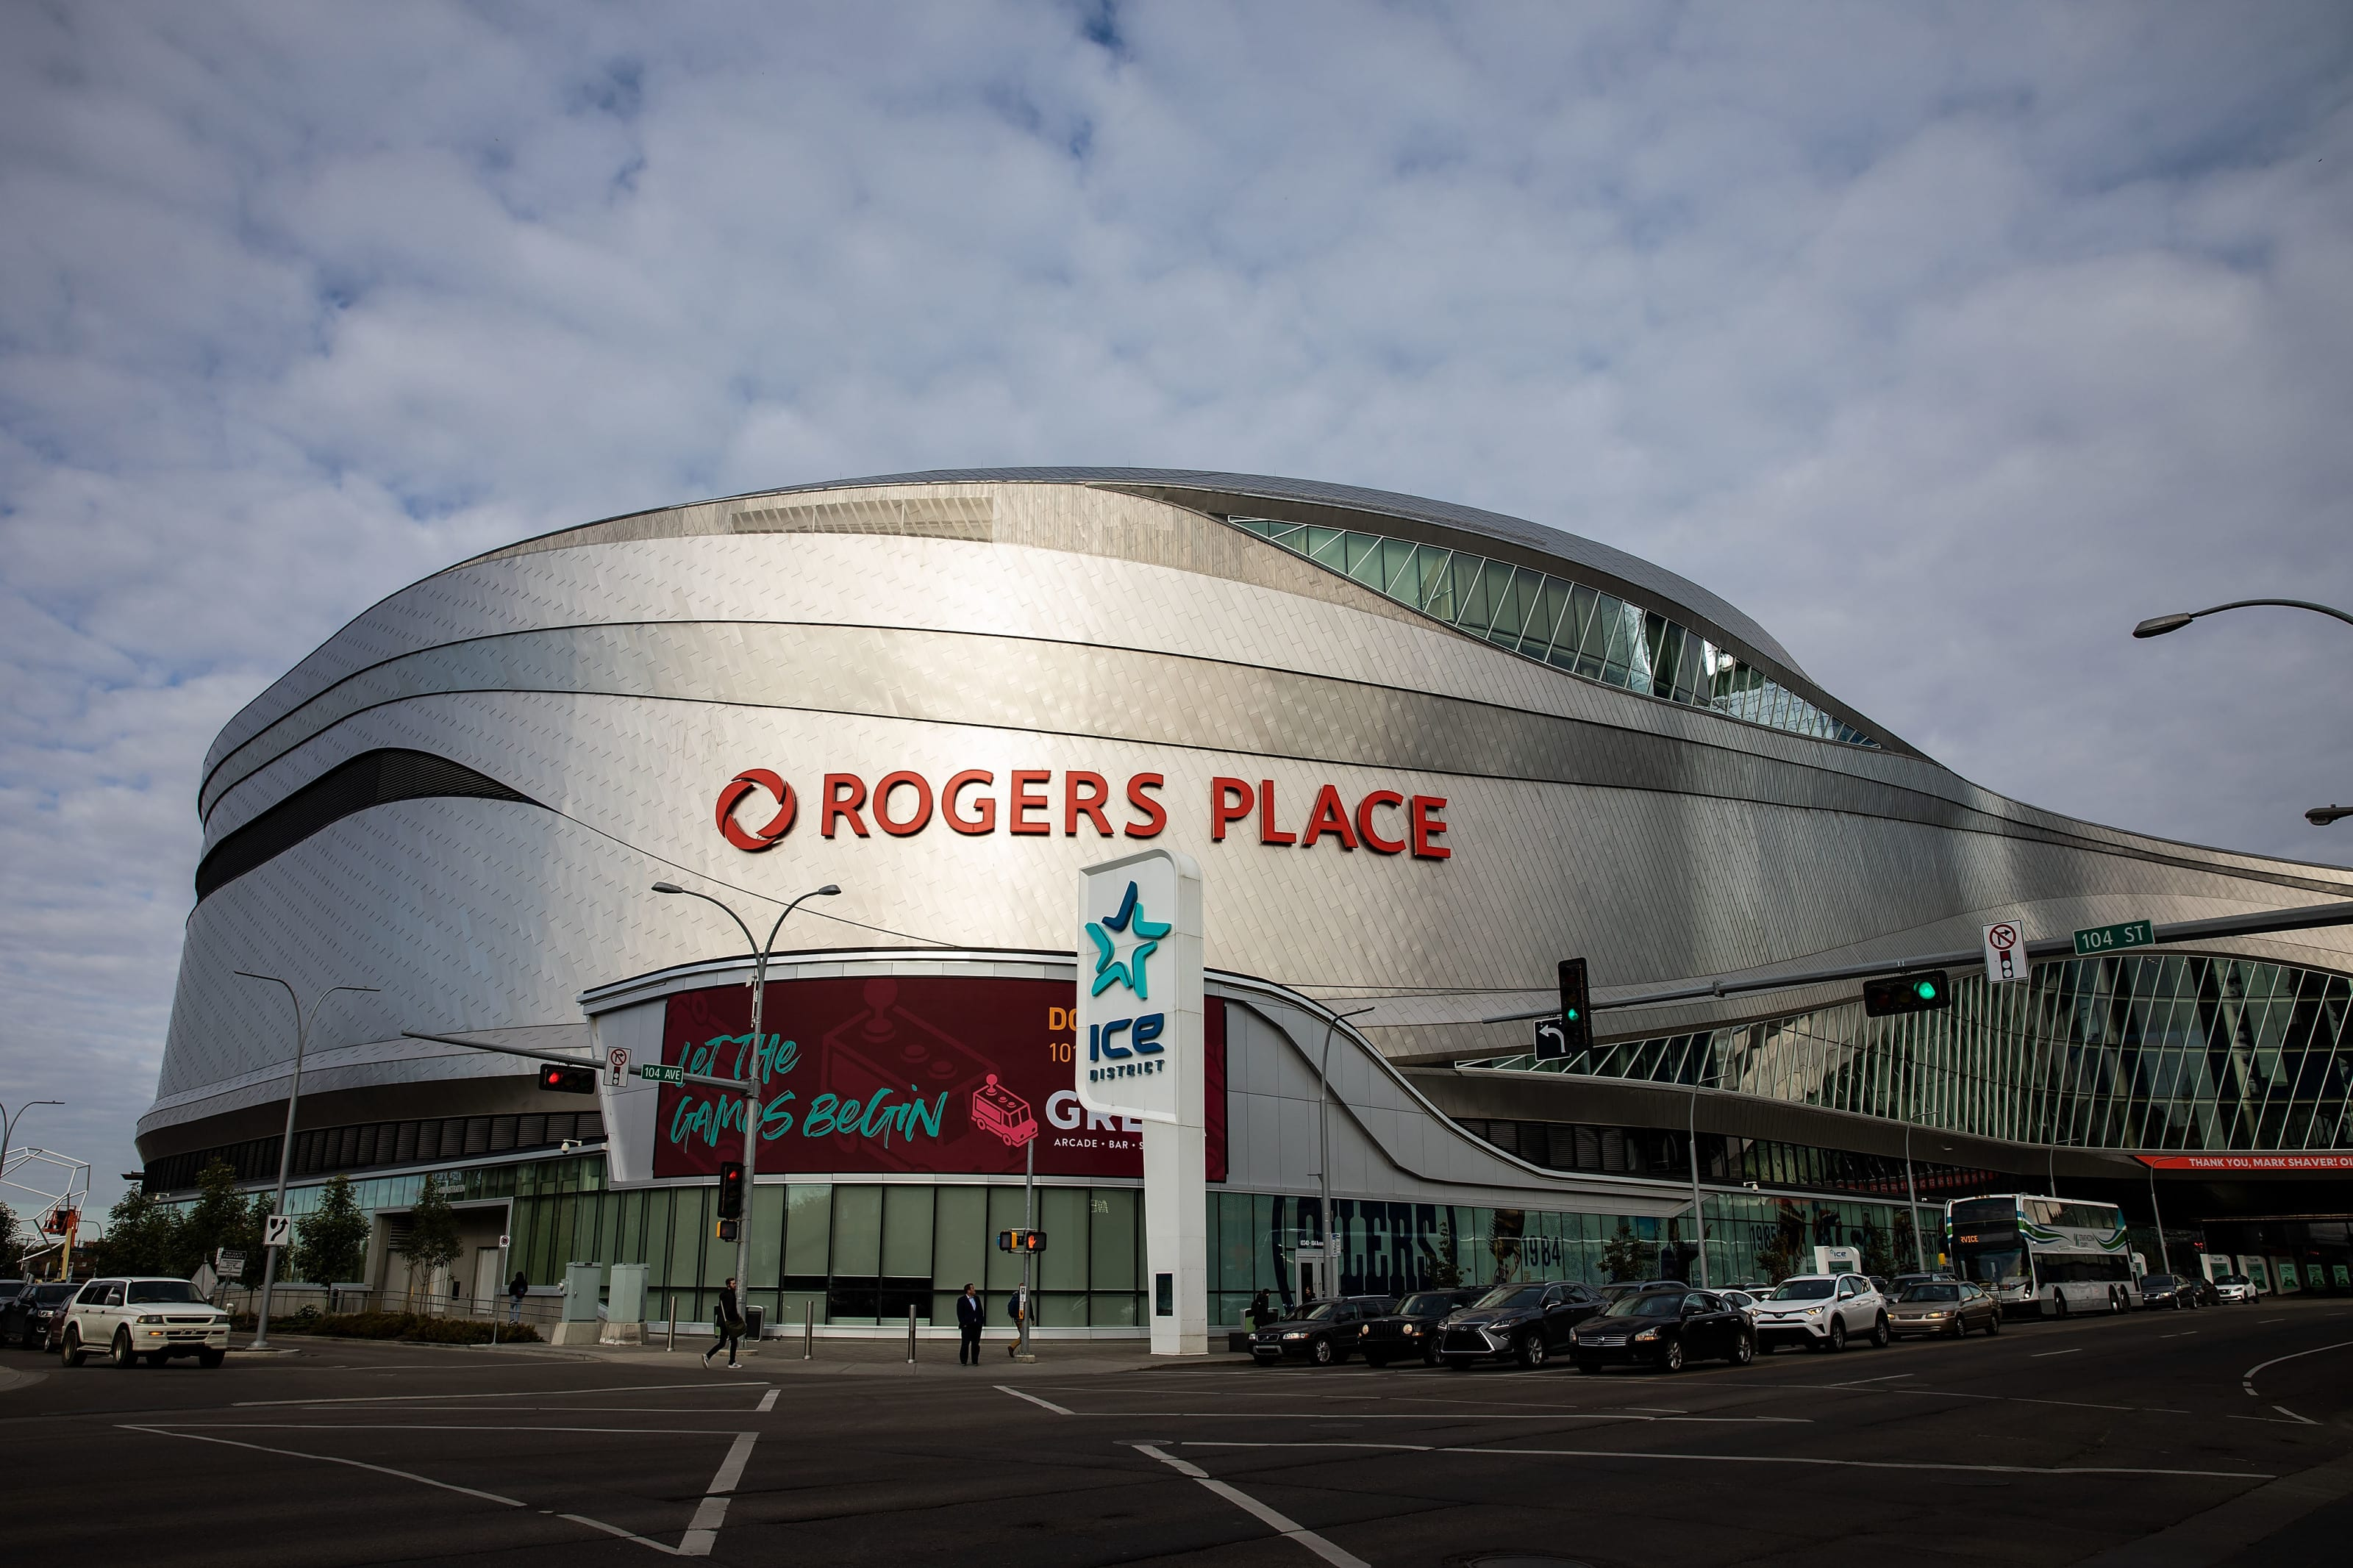 Rogers Place before the Edmonton Oilers home opener against the Vancouver Canucks on October 2, 2019.